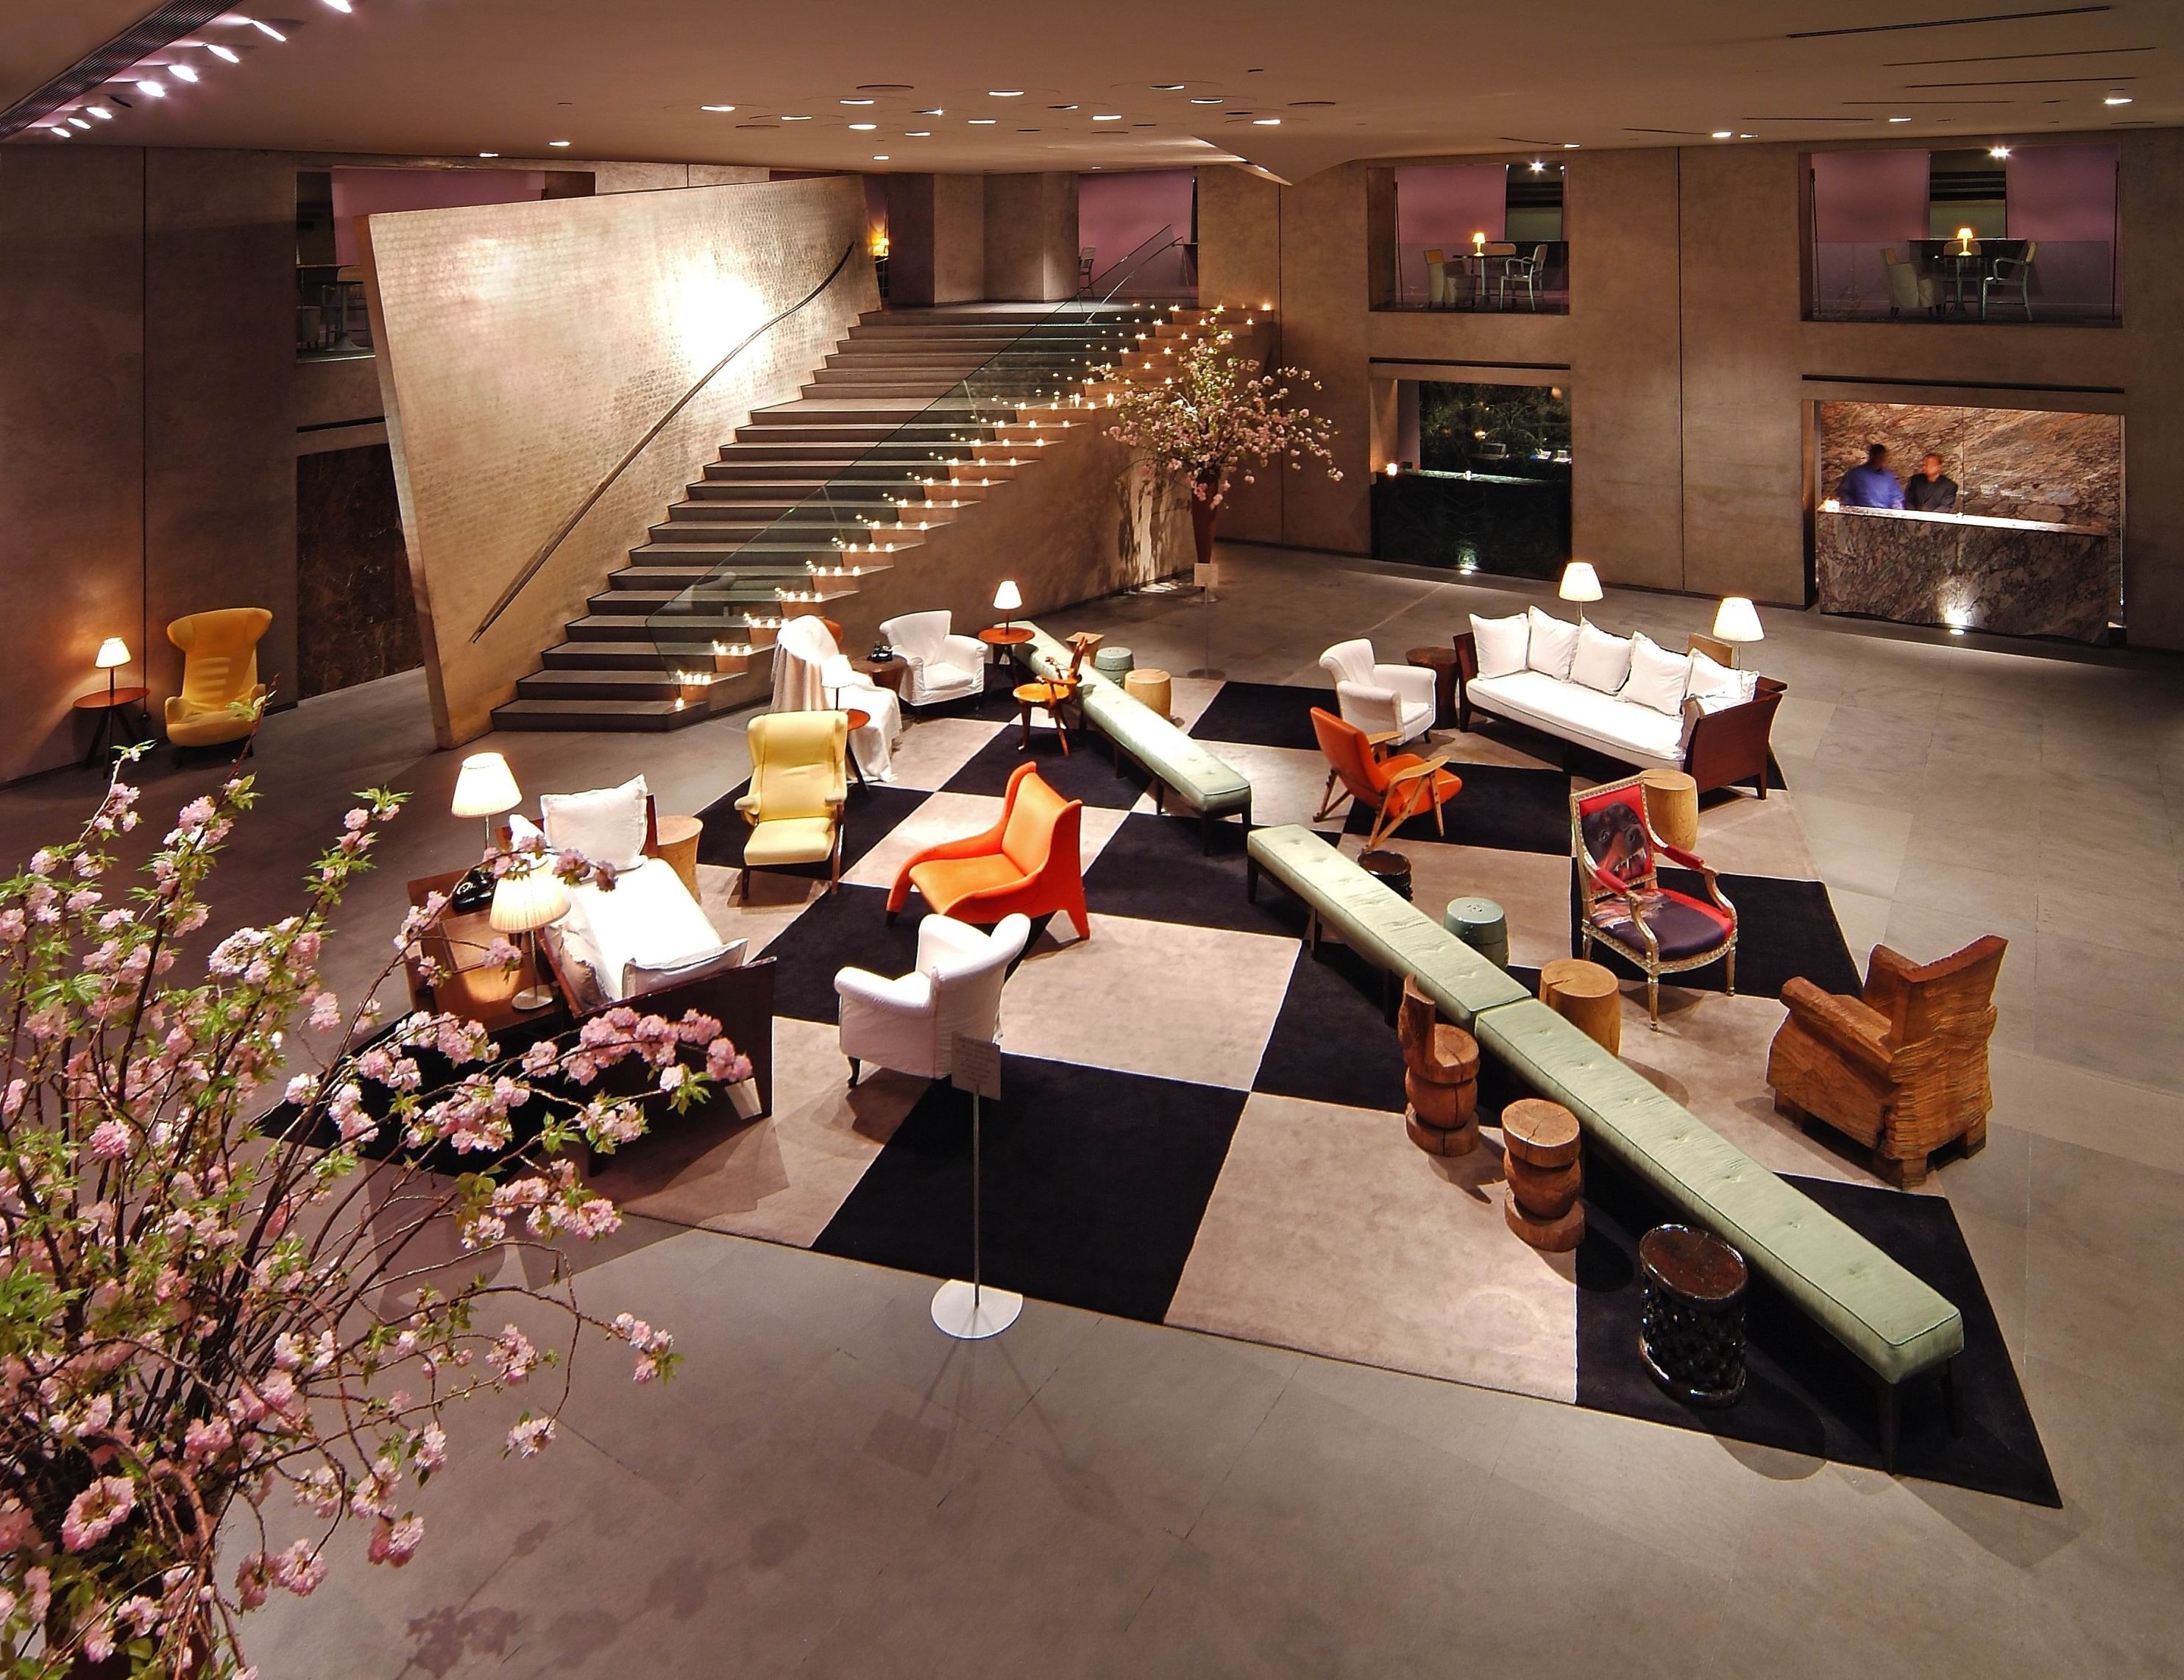 Hudson hotel new york nyc 2013 003 - Find This Pin And More On Jetluxinc New York City By Jetluxhotels